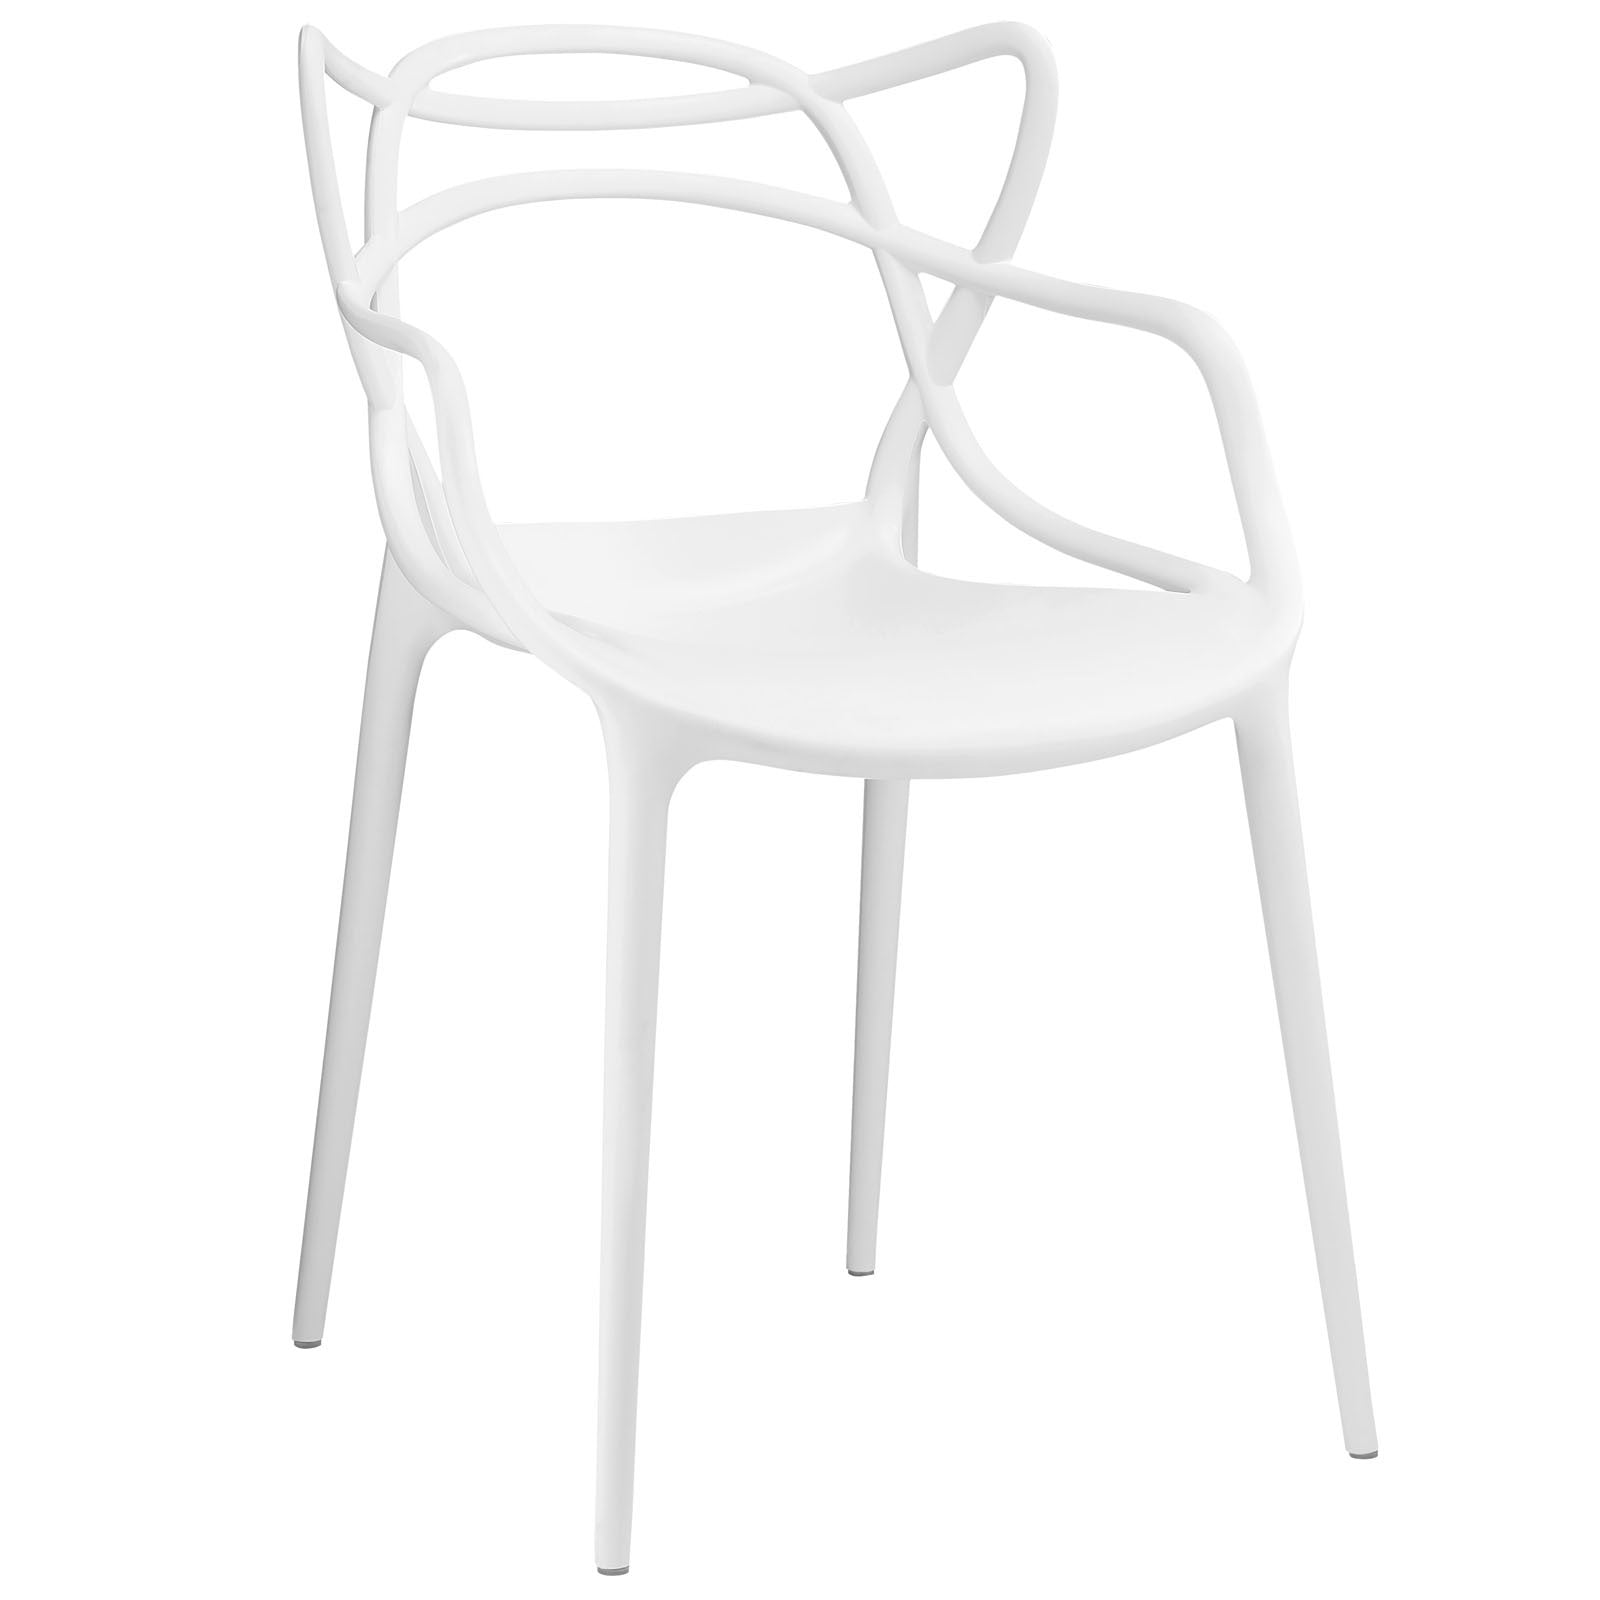 philippe starck masters chair reproduction the modern source